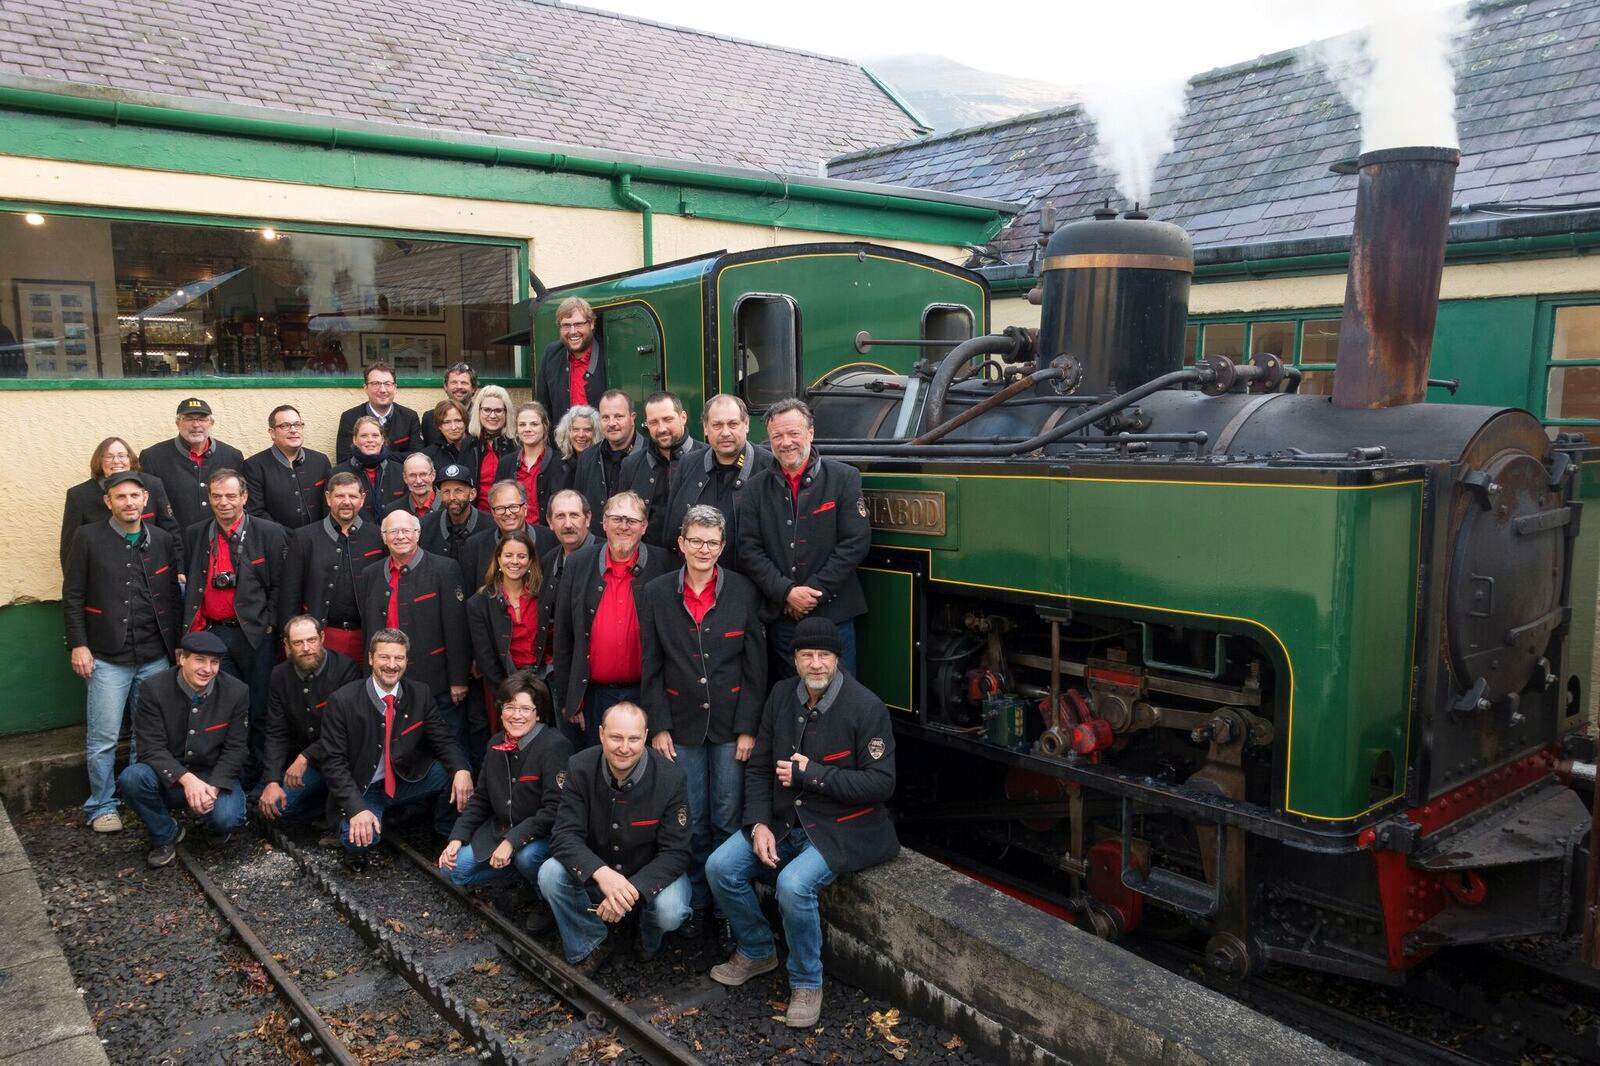 The Brienz Rothorn Bahn staff gather in front of newly overhauled SMR No. 5  Moel Siabod  at Llanberis station. SMR